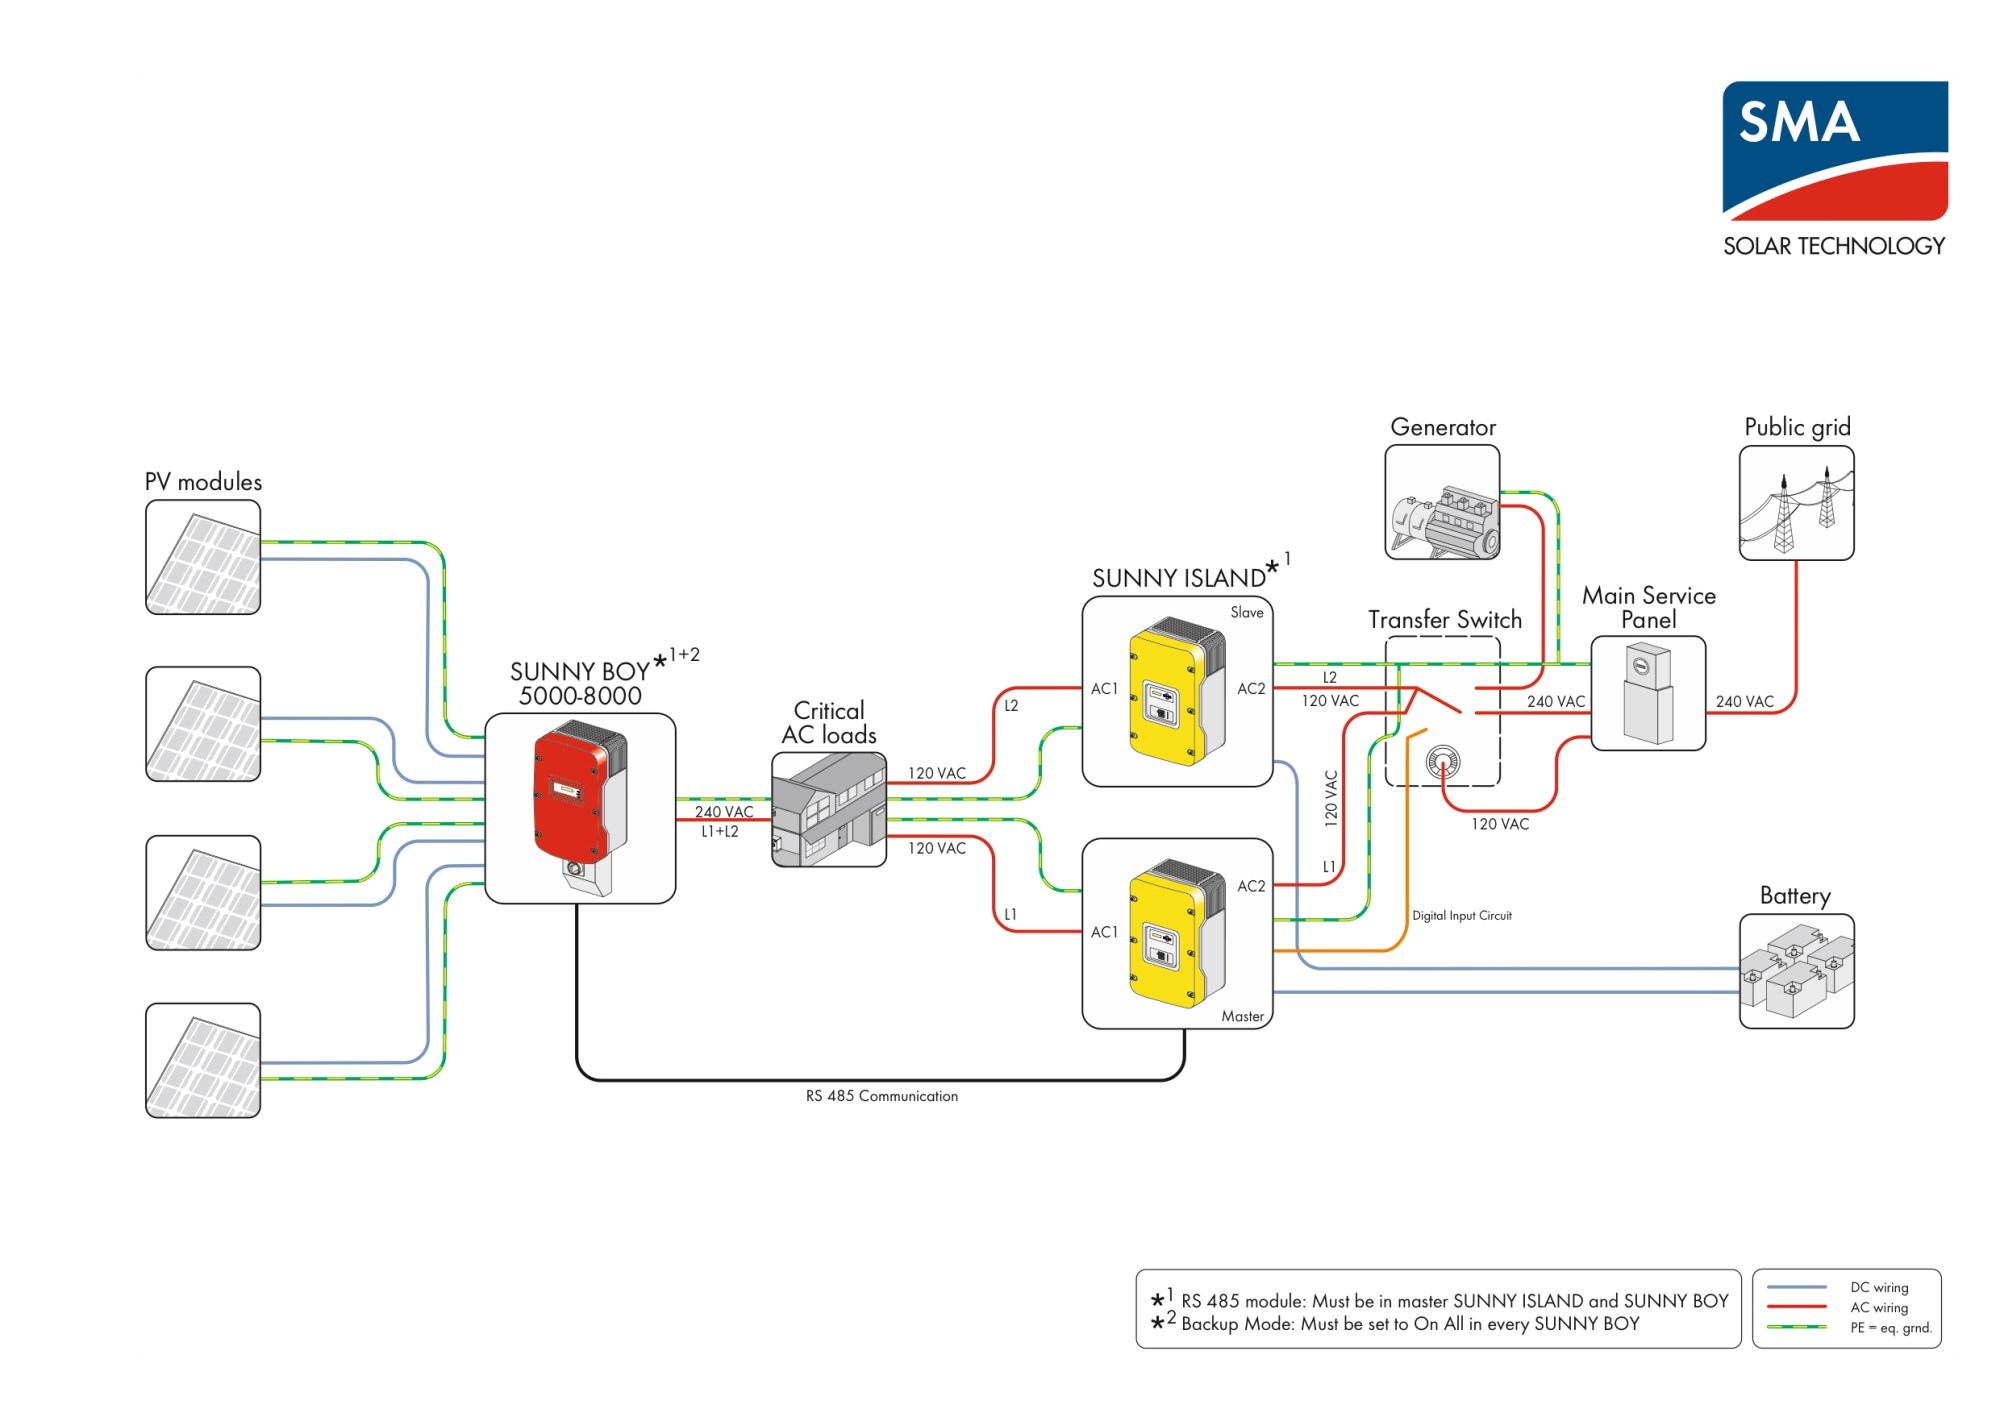 hight resolution of sample sunny island system diagrams 3 page 6 jpg711 kb